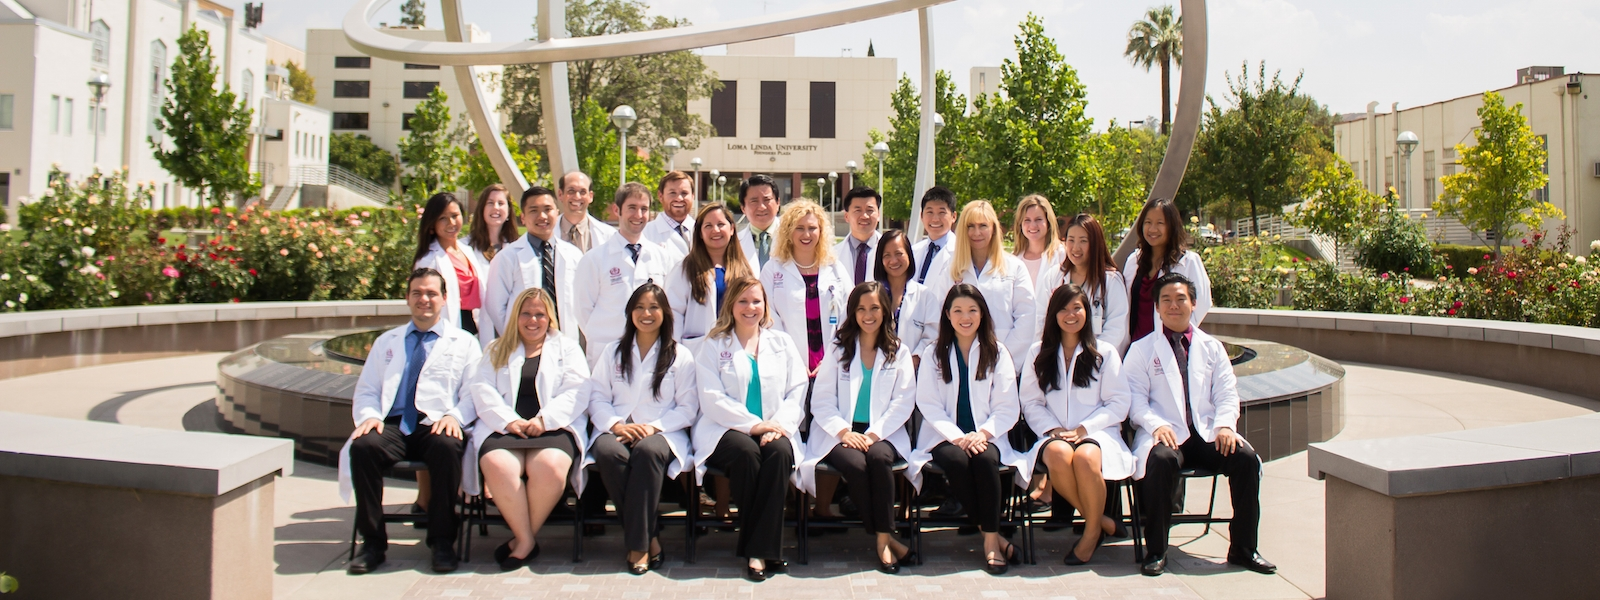 LLU School of Pharmacy Residency Program